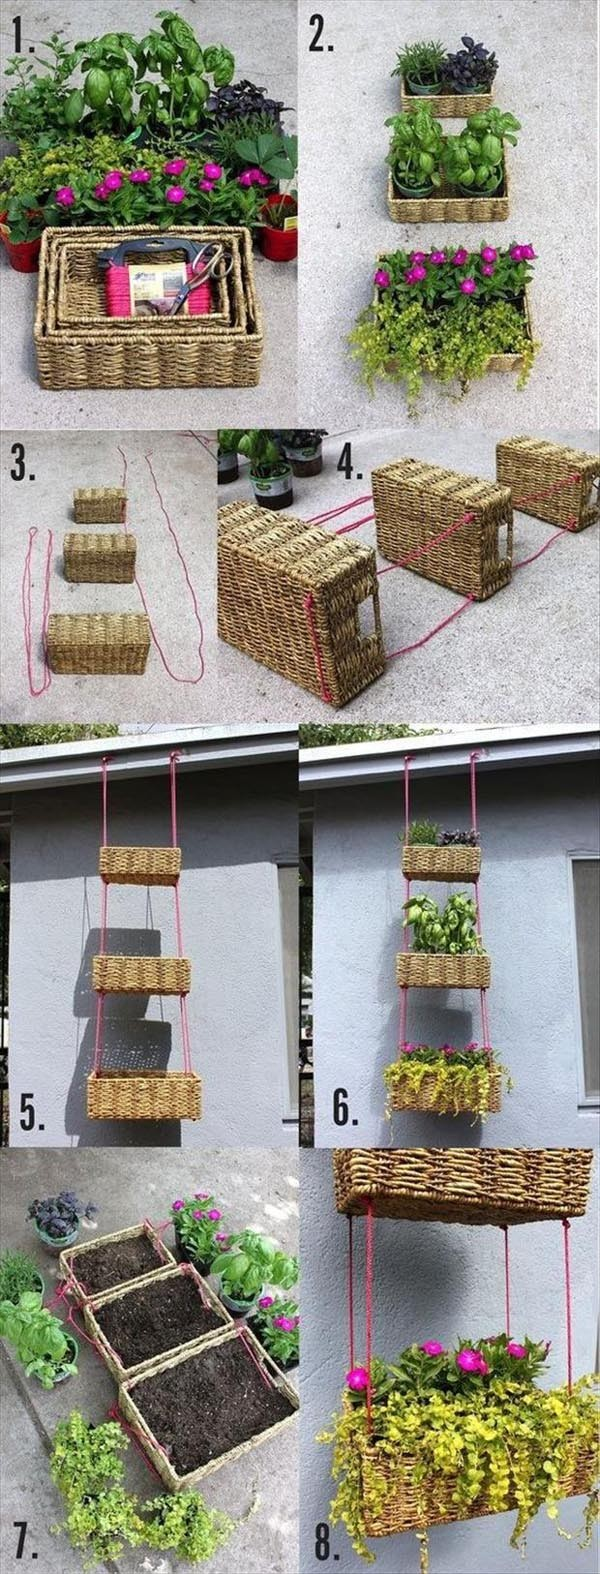 Hanging Baskets DIY Tutorial 1